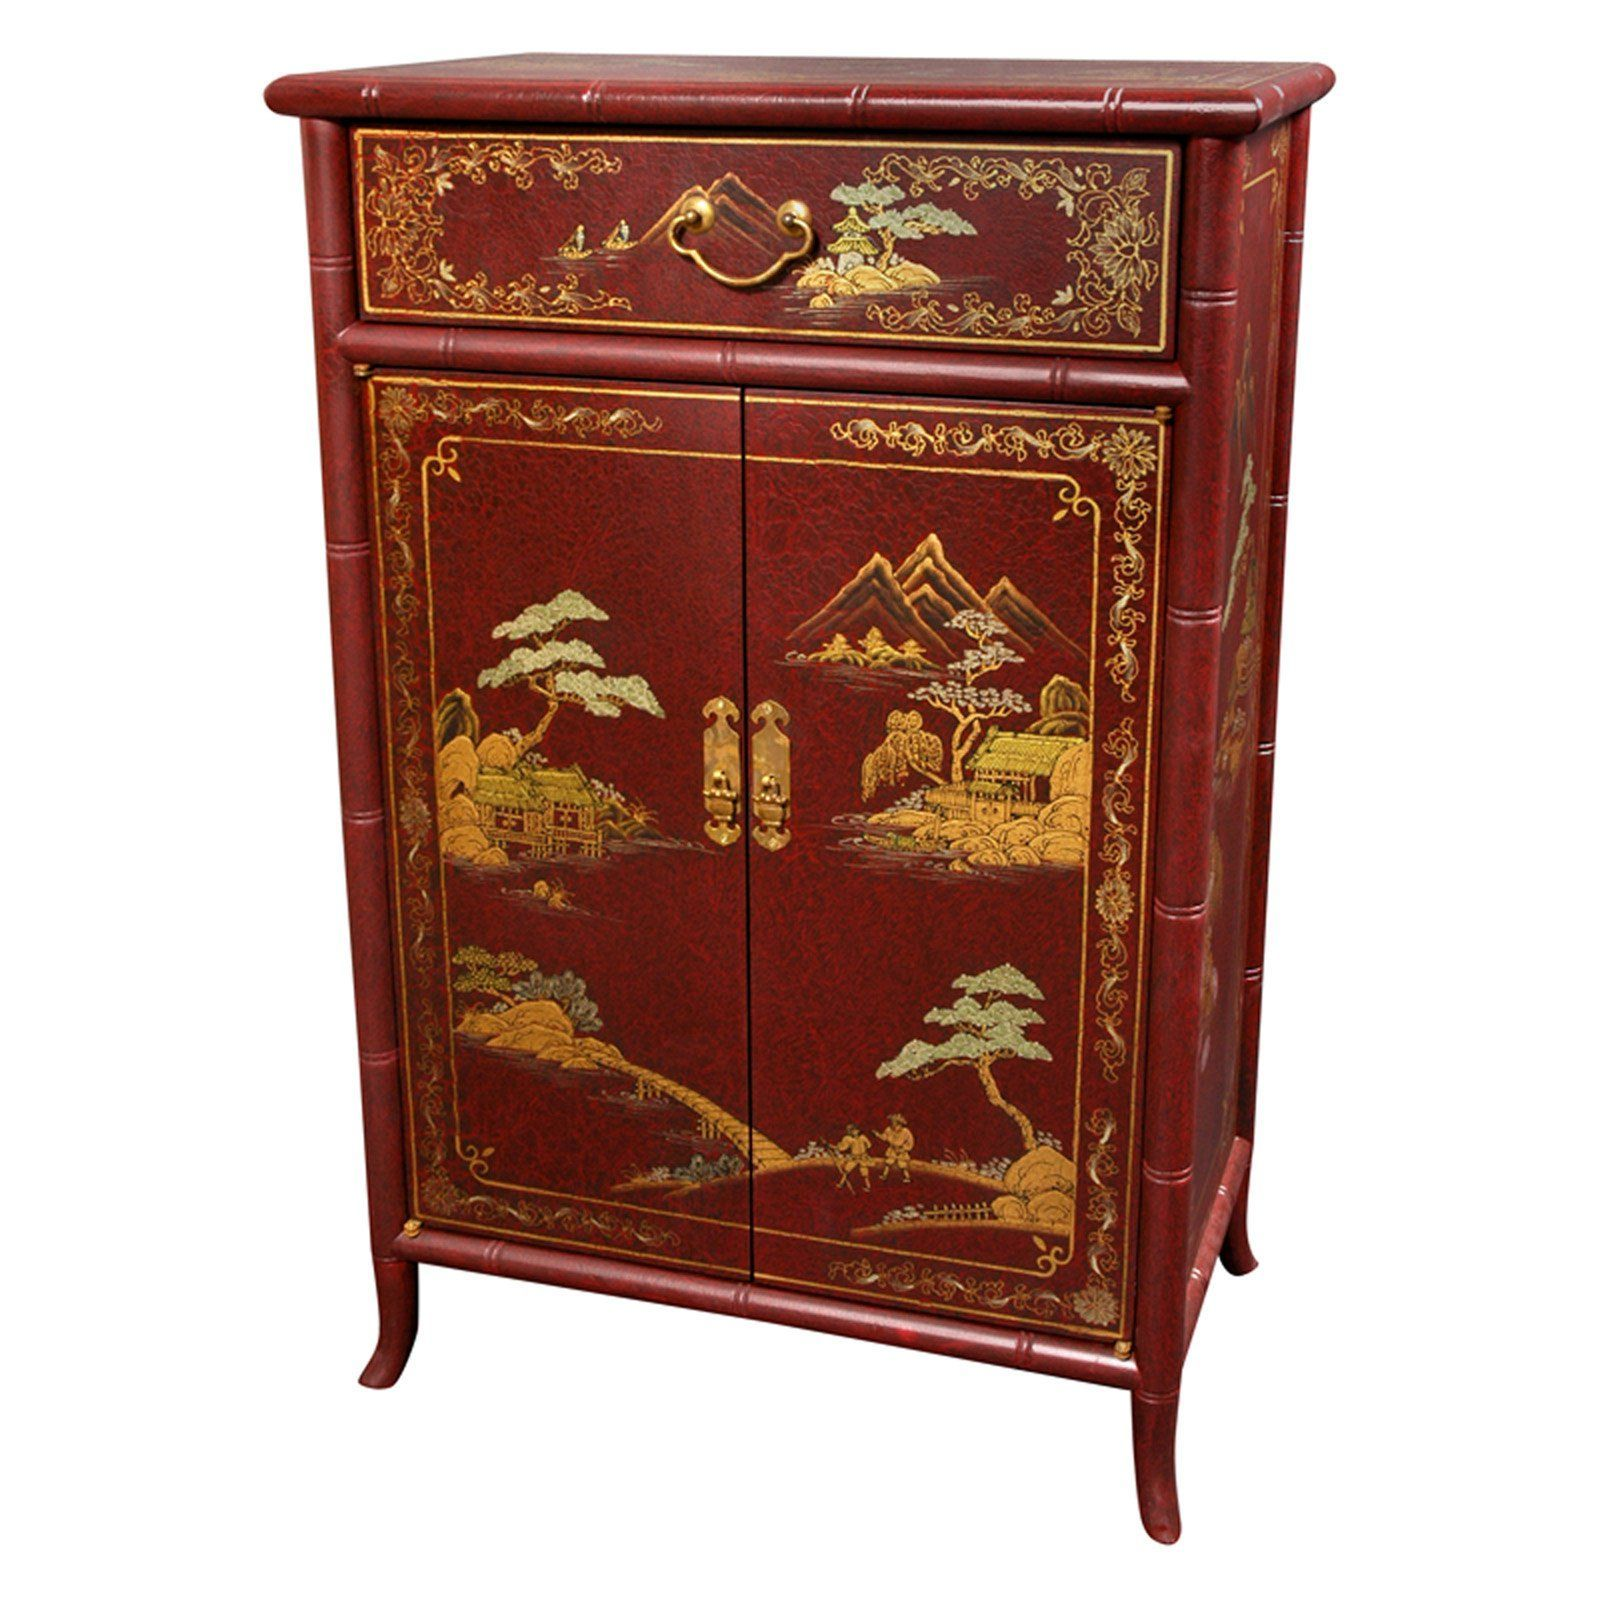 Orientalische Mobel Japanese Crackle Decorative Chest Red In 2020